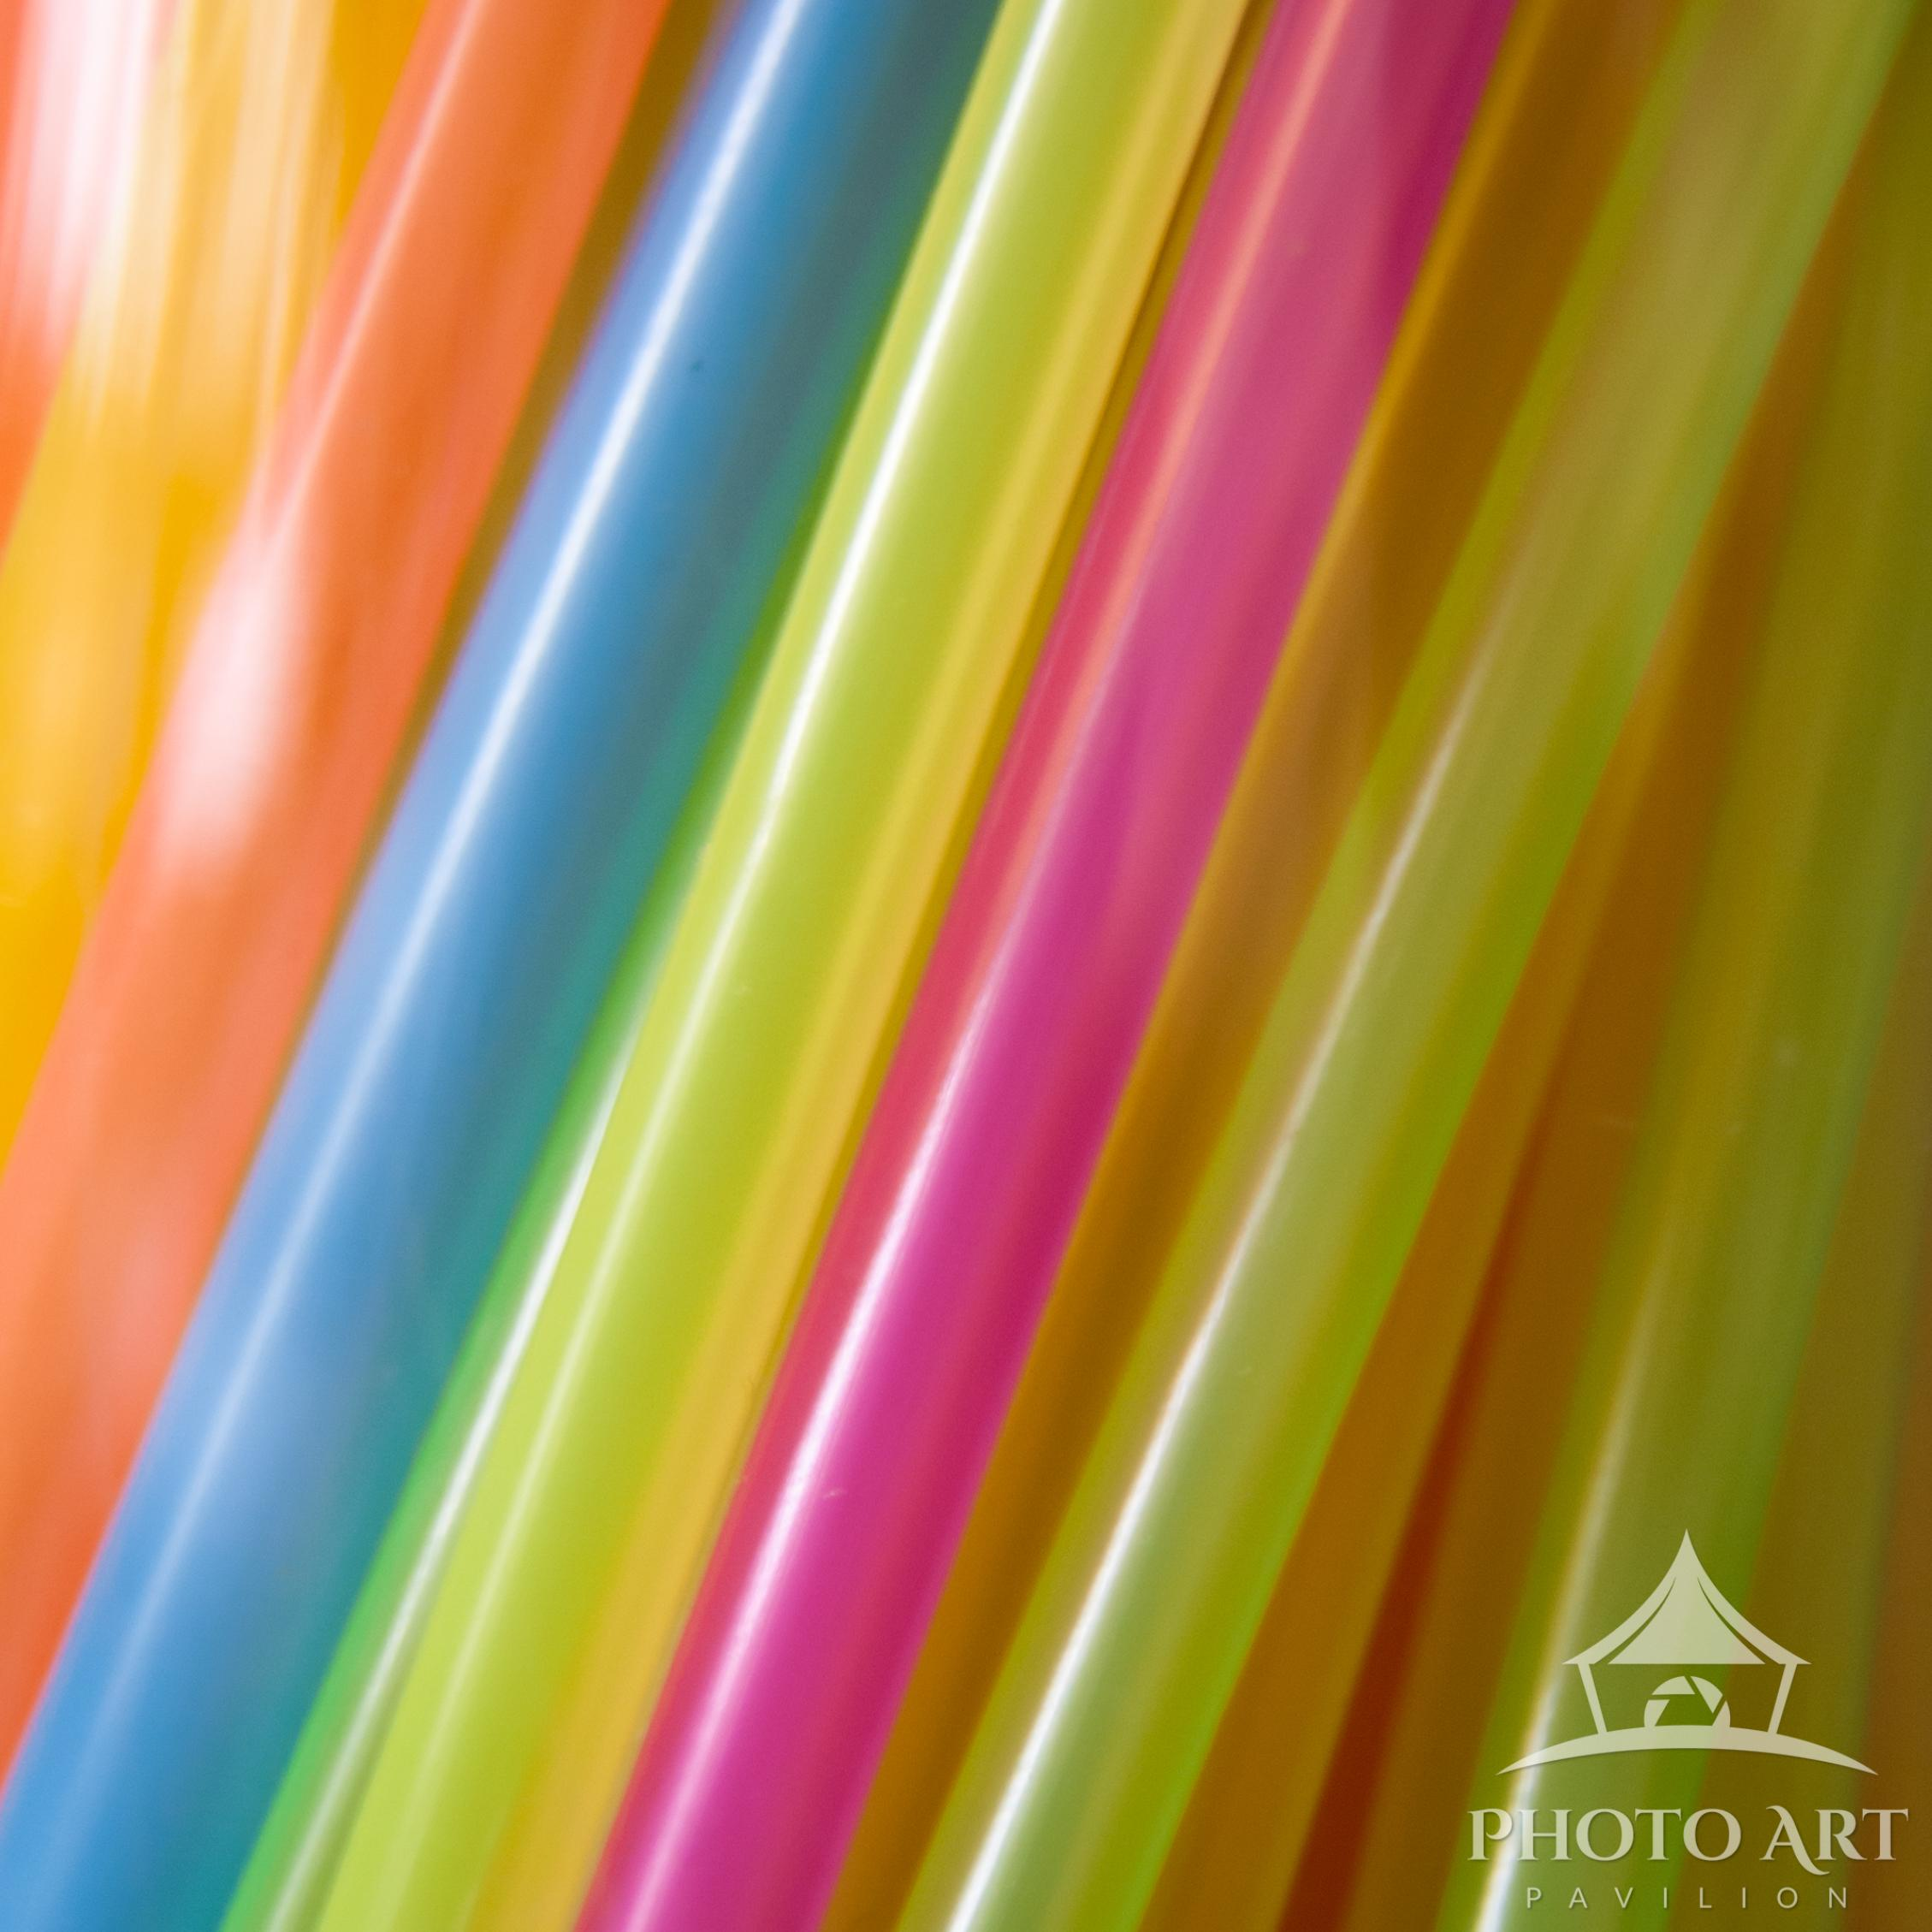 Up-close image of drinking straws.